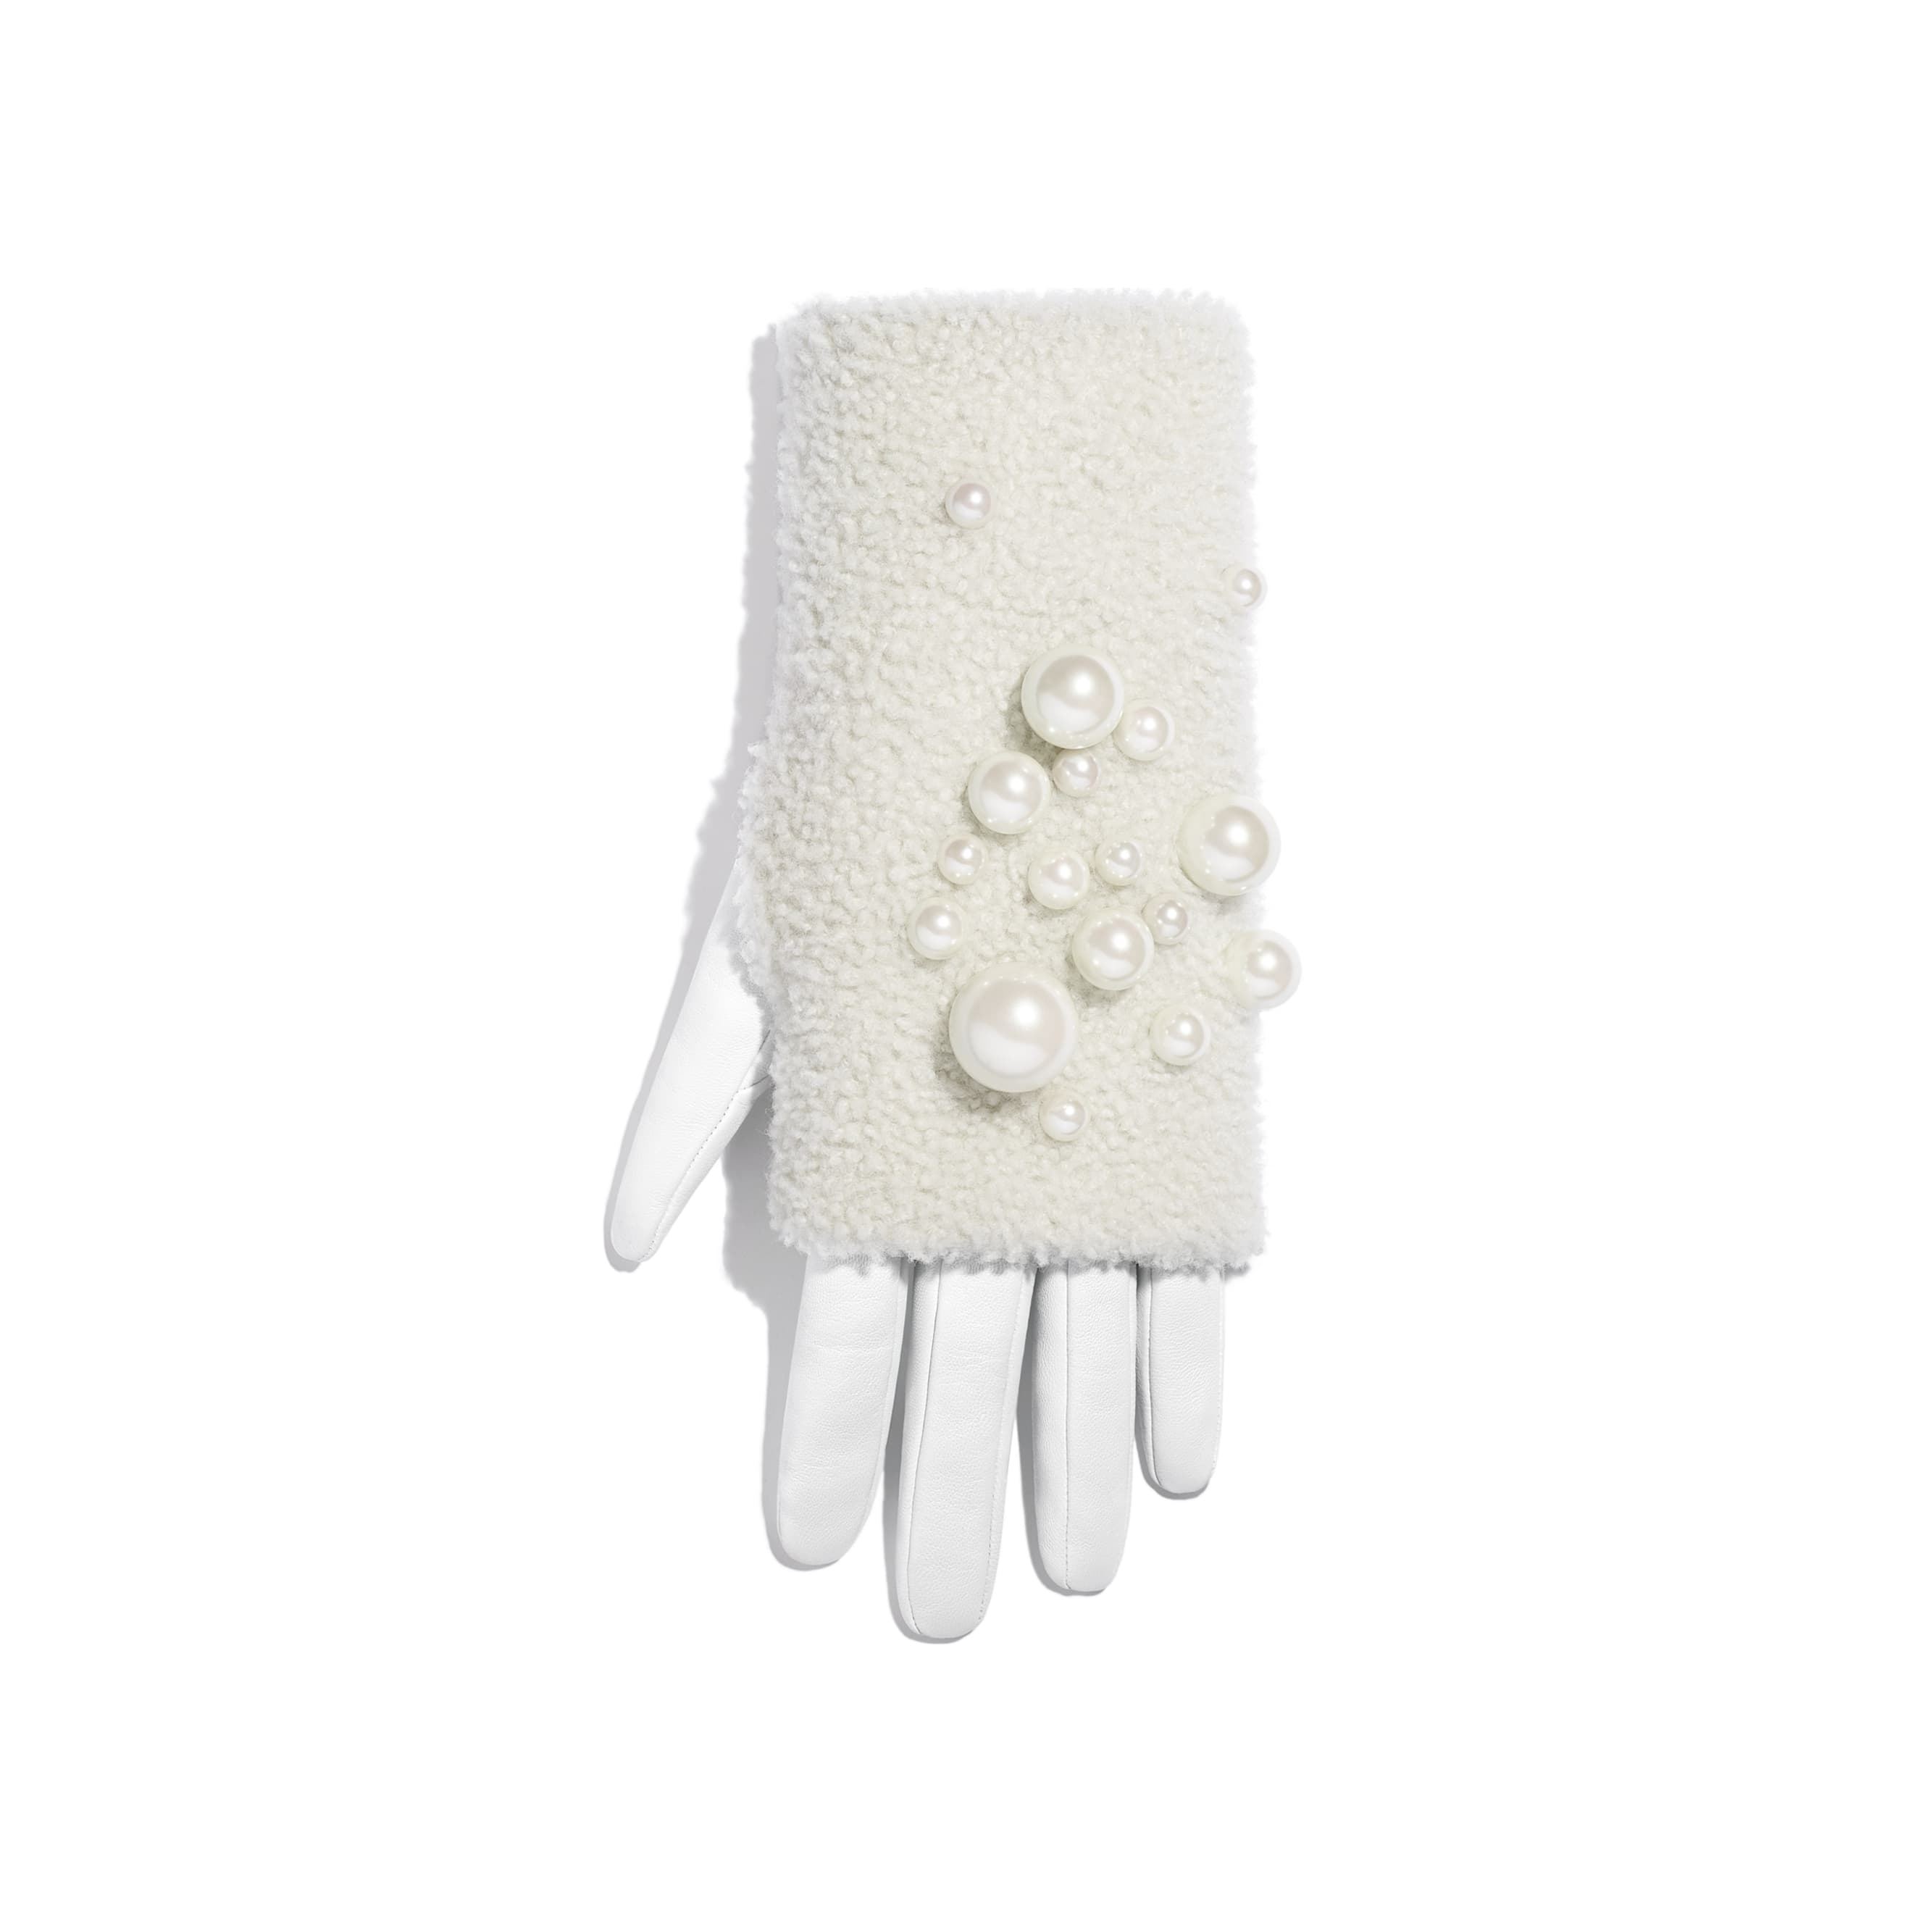 Gloves - White & Ivory - Lambskin, Shearling & Pearls - Alternative view - see standard sized version